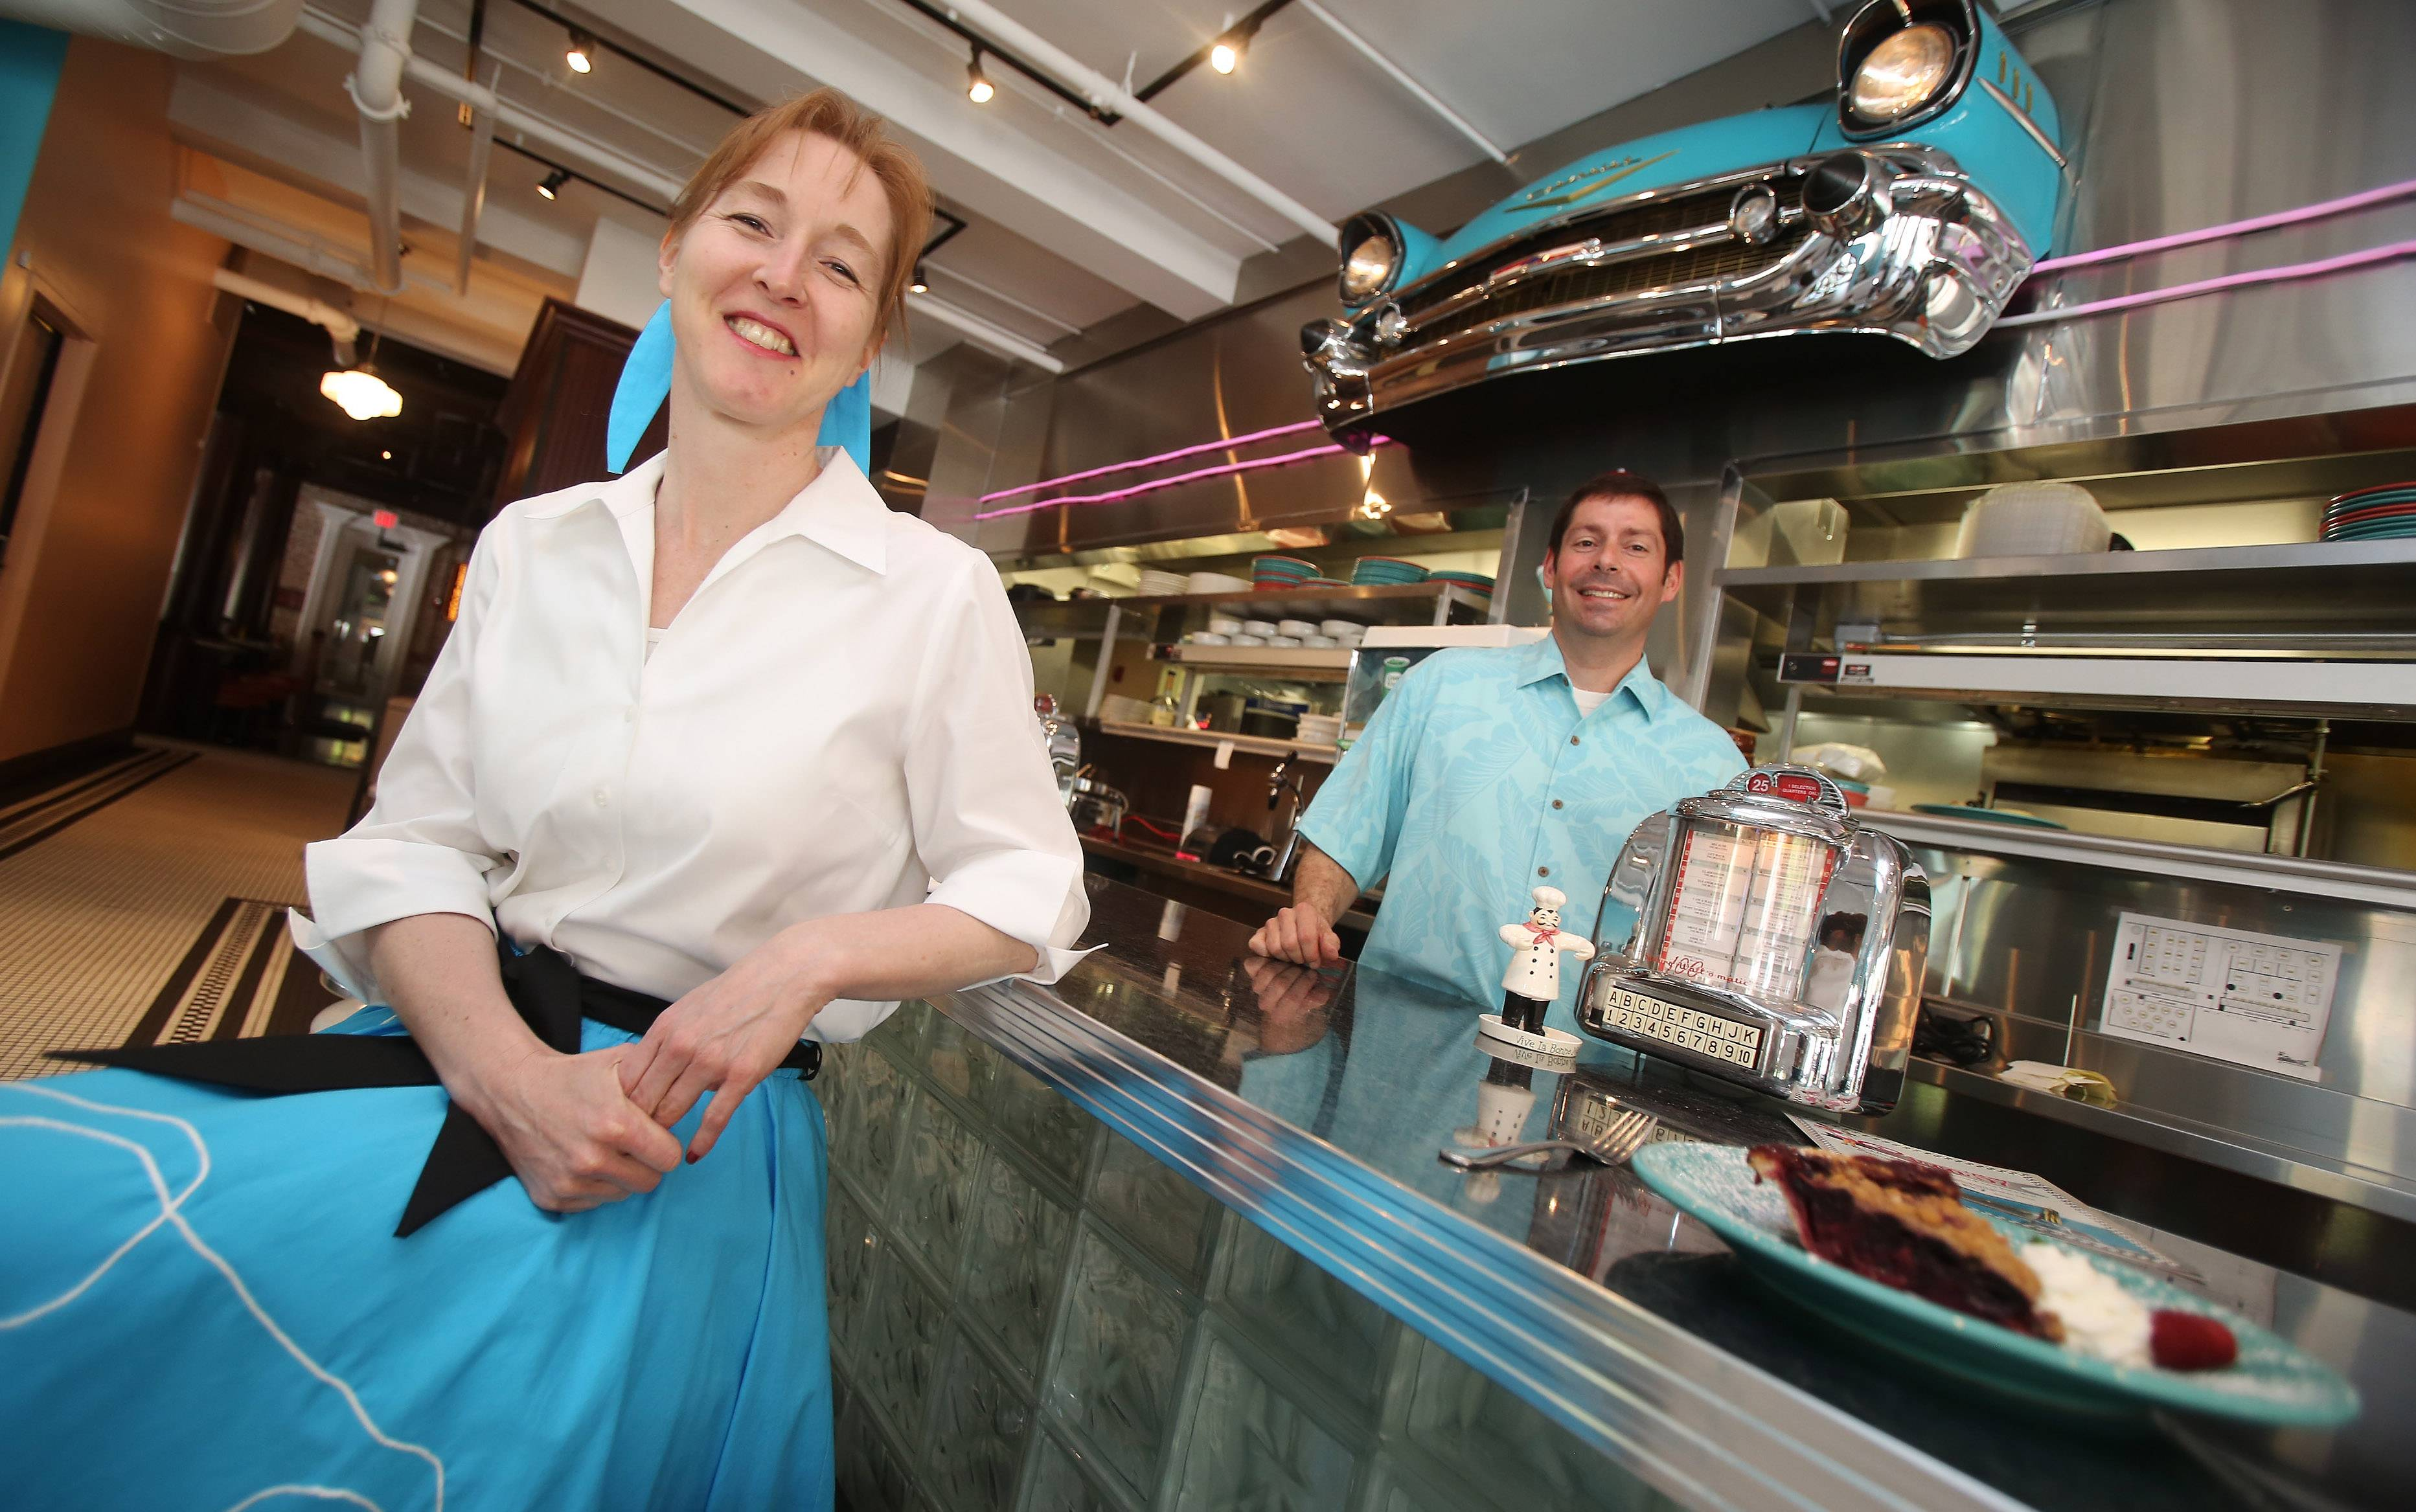 Circa 57 diner in Arlington Heights is owned by Kimberly and Anthony Priola.